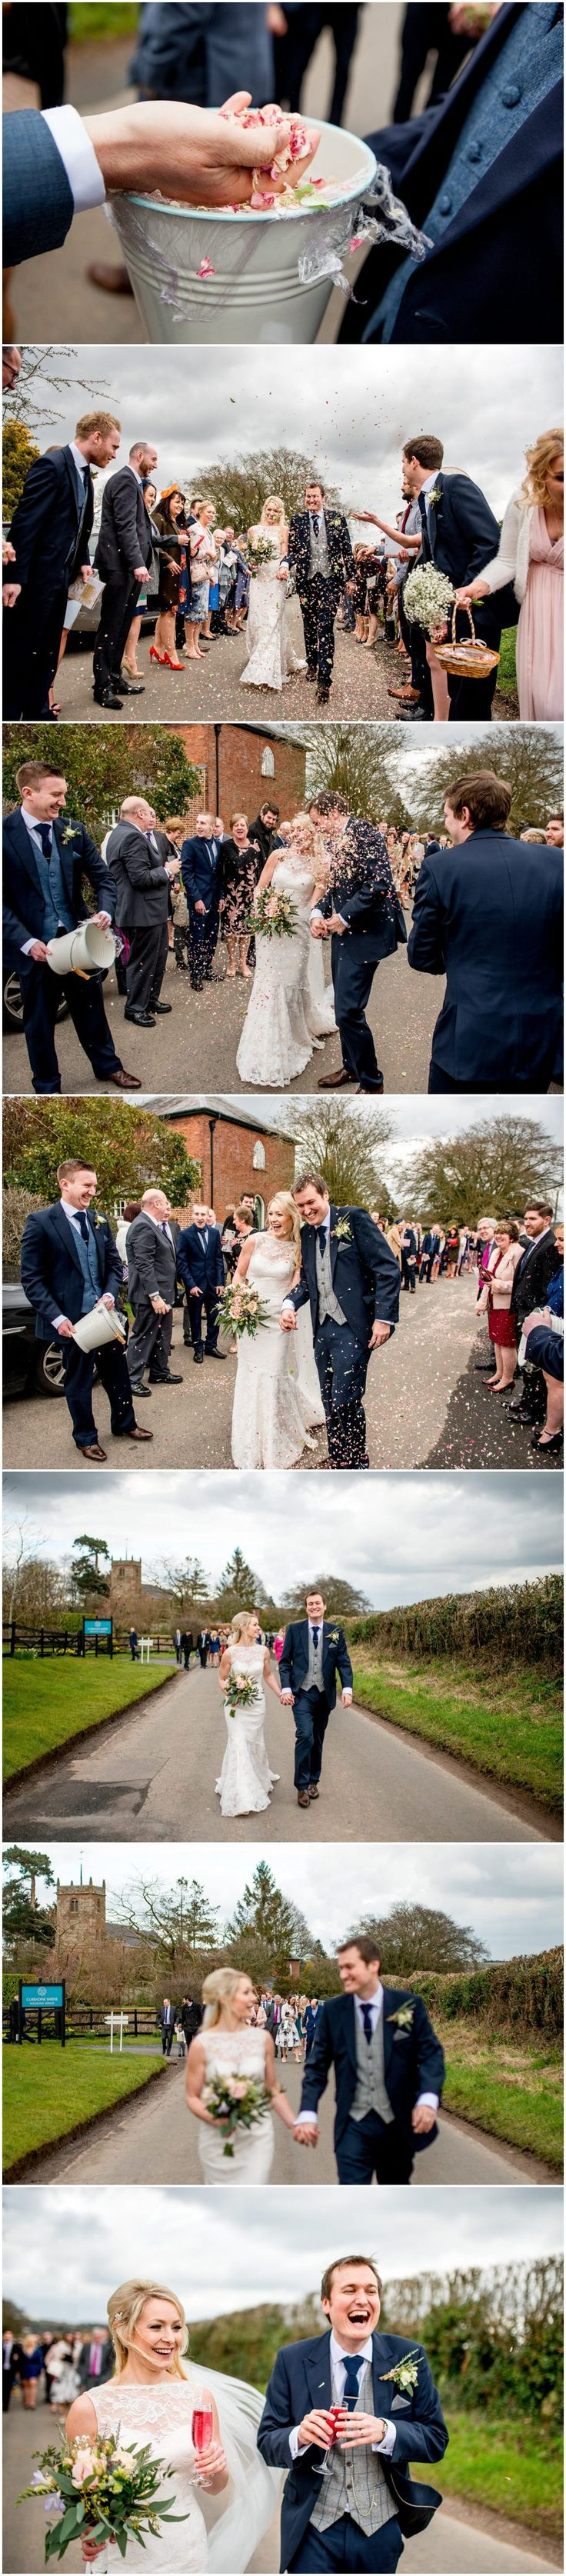 budget wedding photography west midlands%0A     West Midlands wedding photographer  See more  Amy and Tom u    s springtime  wedding at Curradine Barns with pastel pinks and creme theme  church